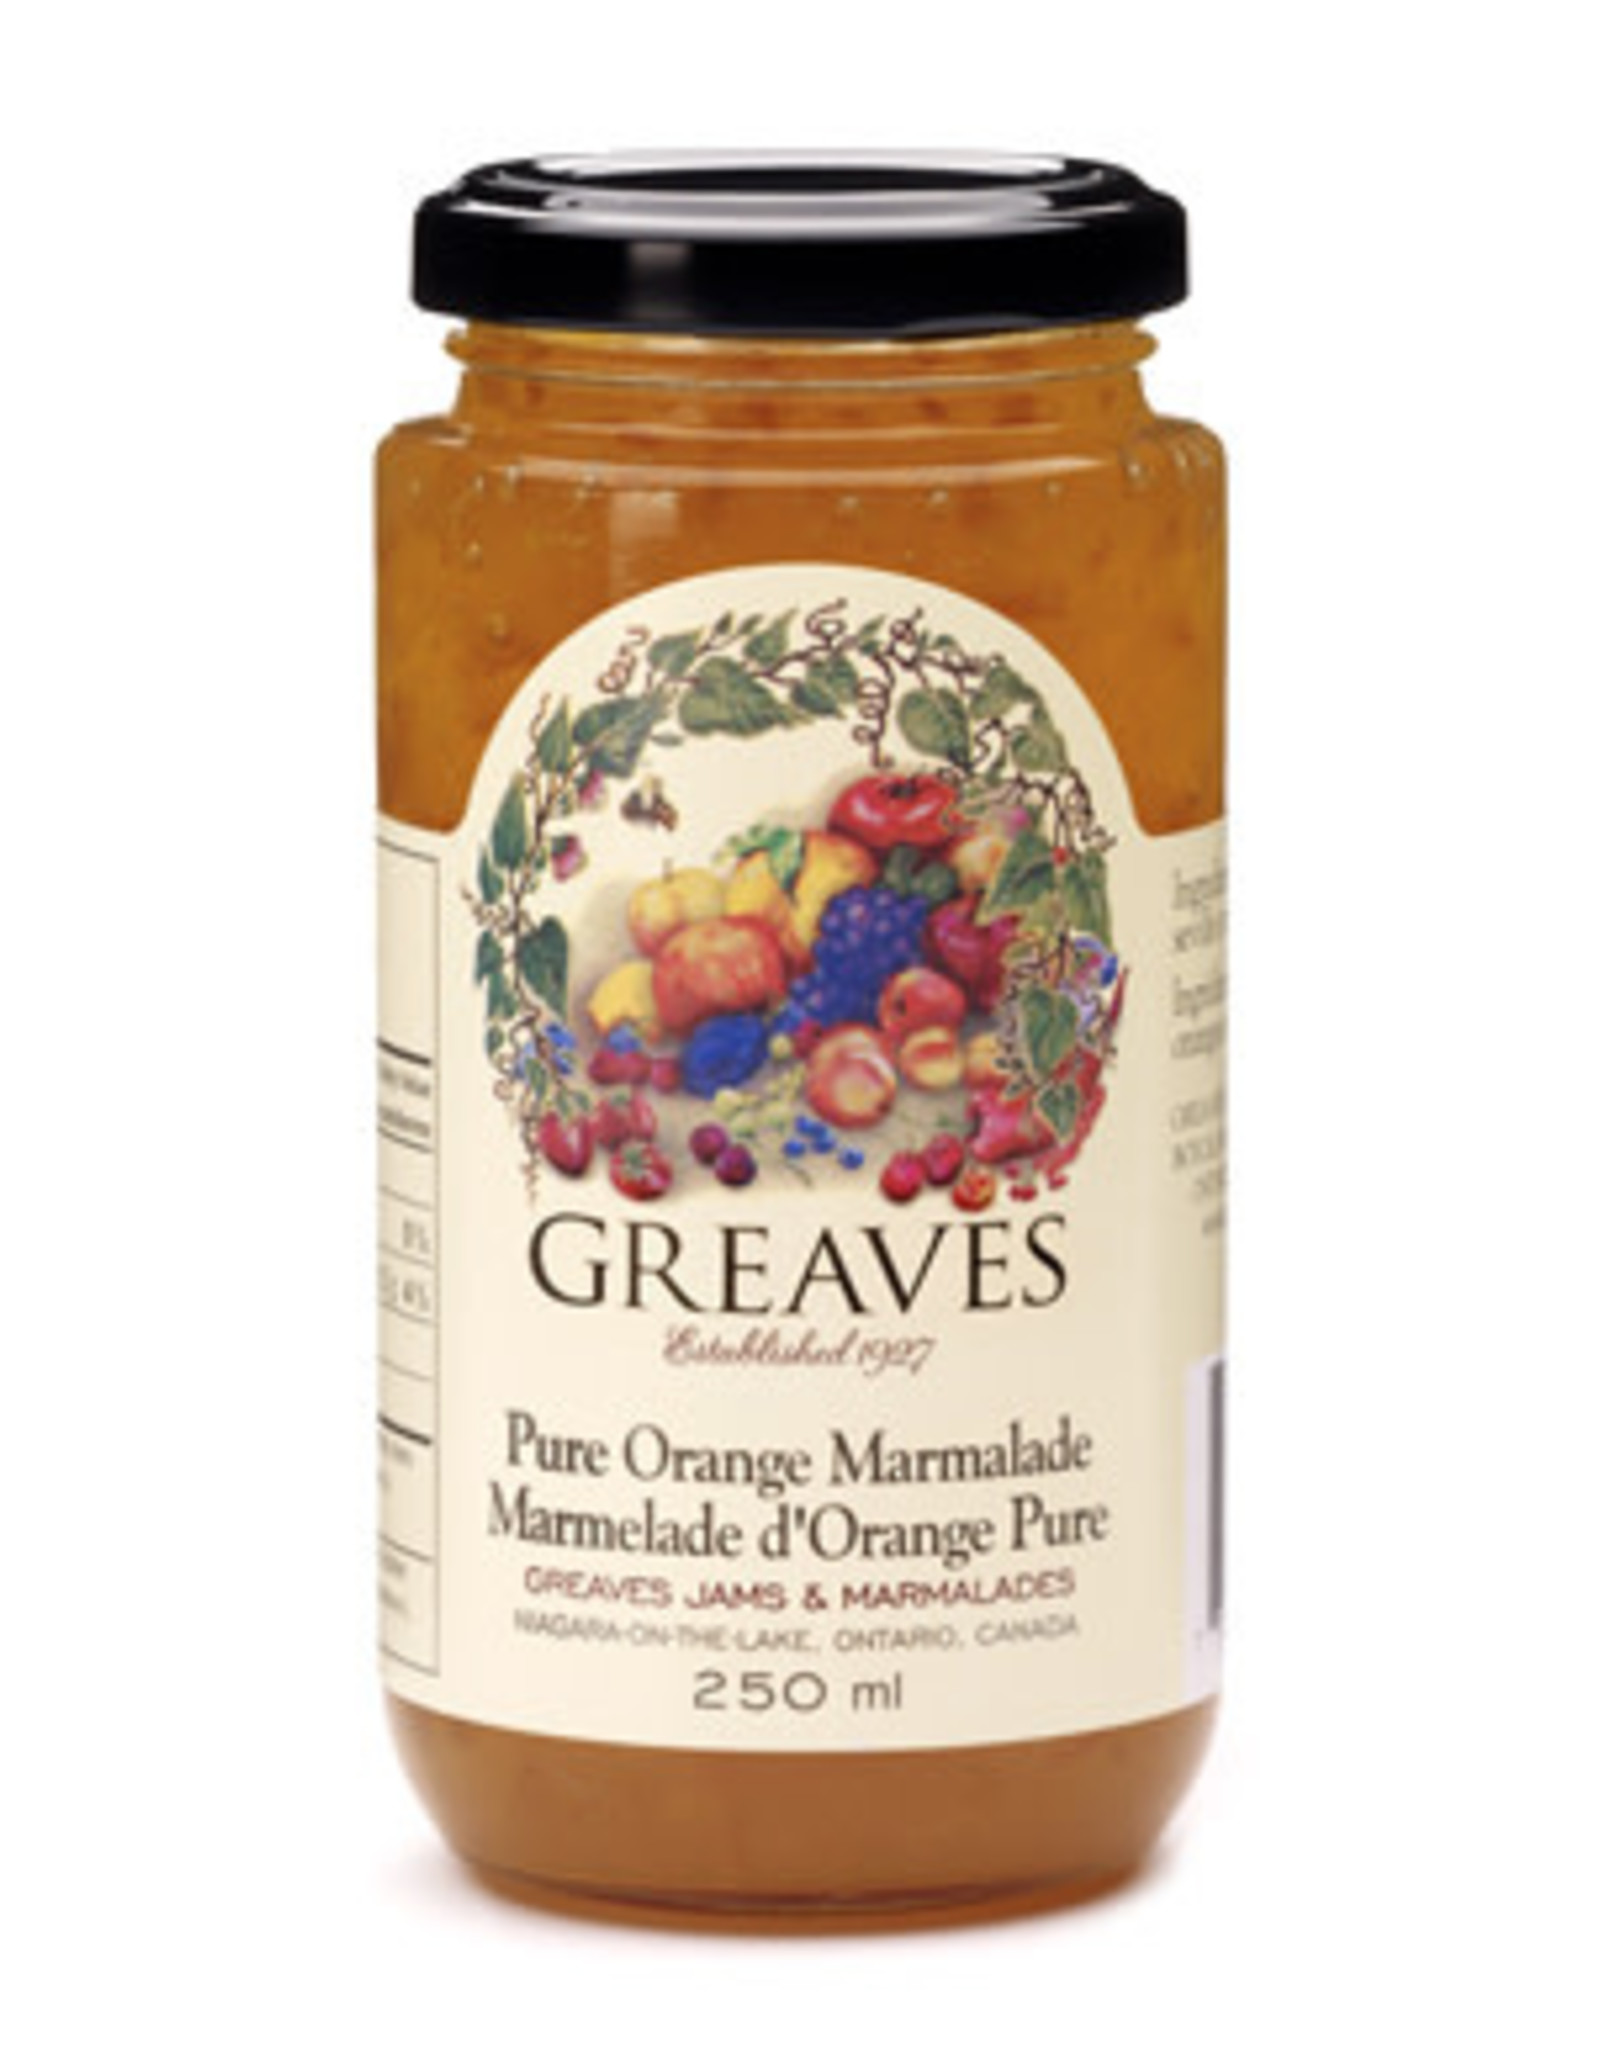 Greaves Jams & Marmalades Ltd. Greaves, Seville Orange Marmalade, 250ml